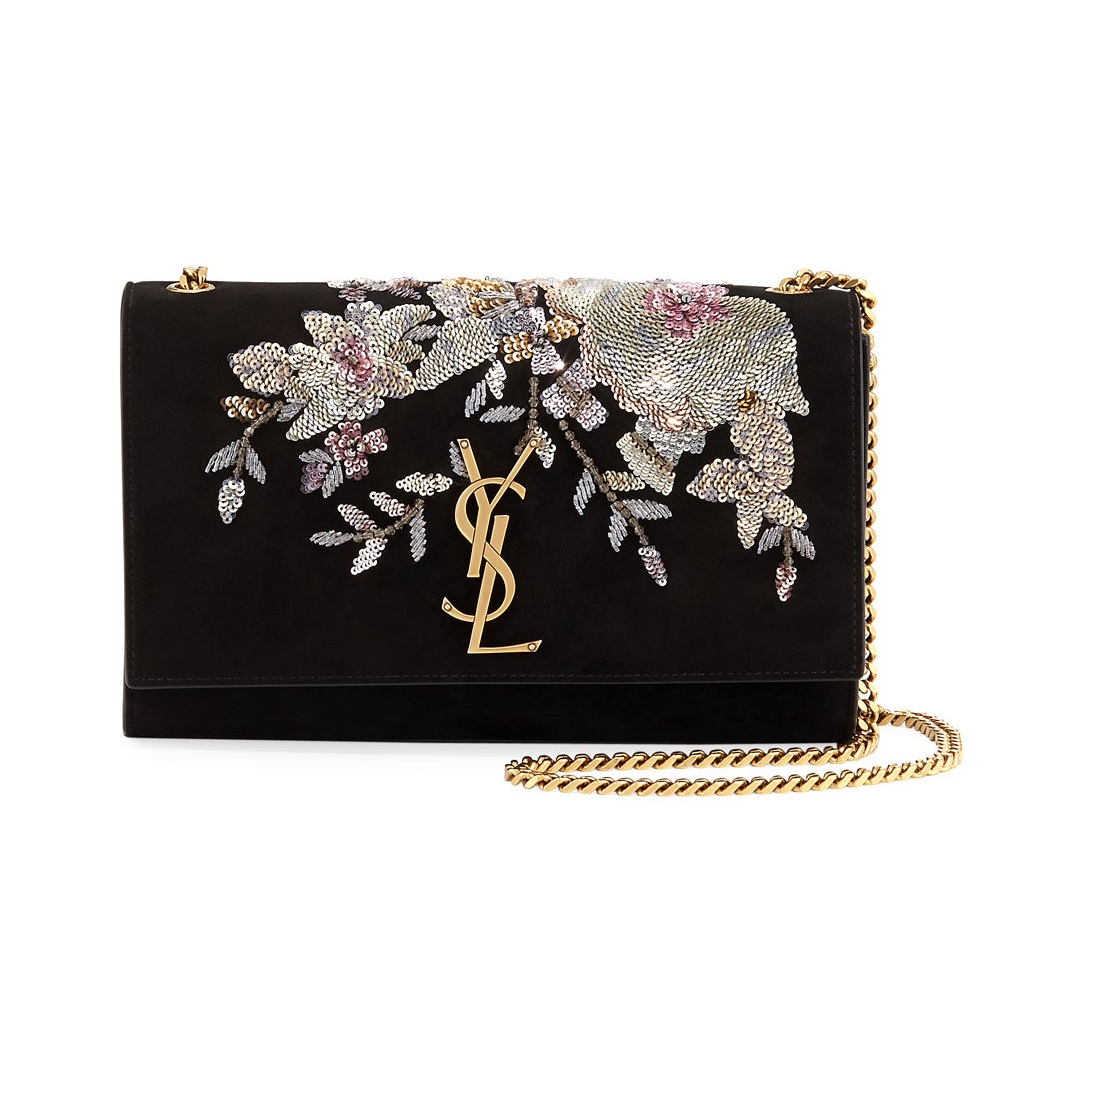 Saint Laurent Kate Medium Embroidered Suede Chain Shoulder Bag